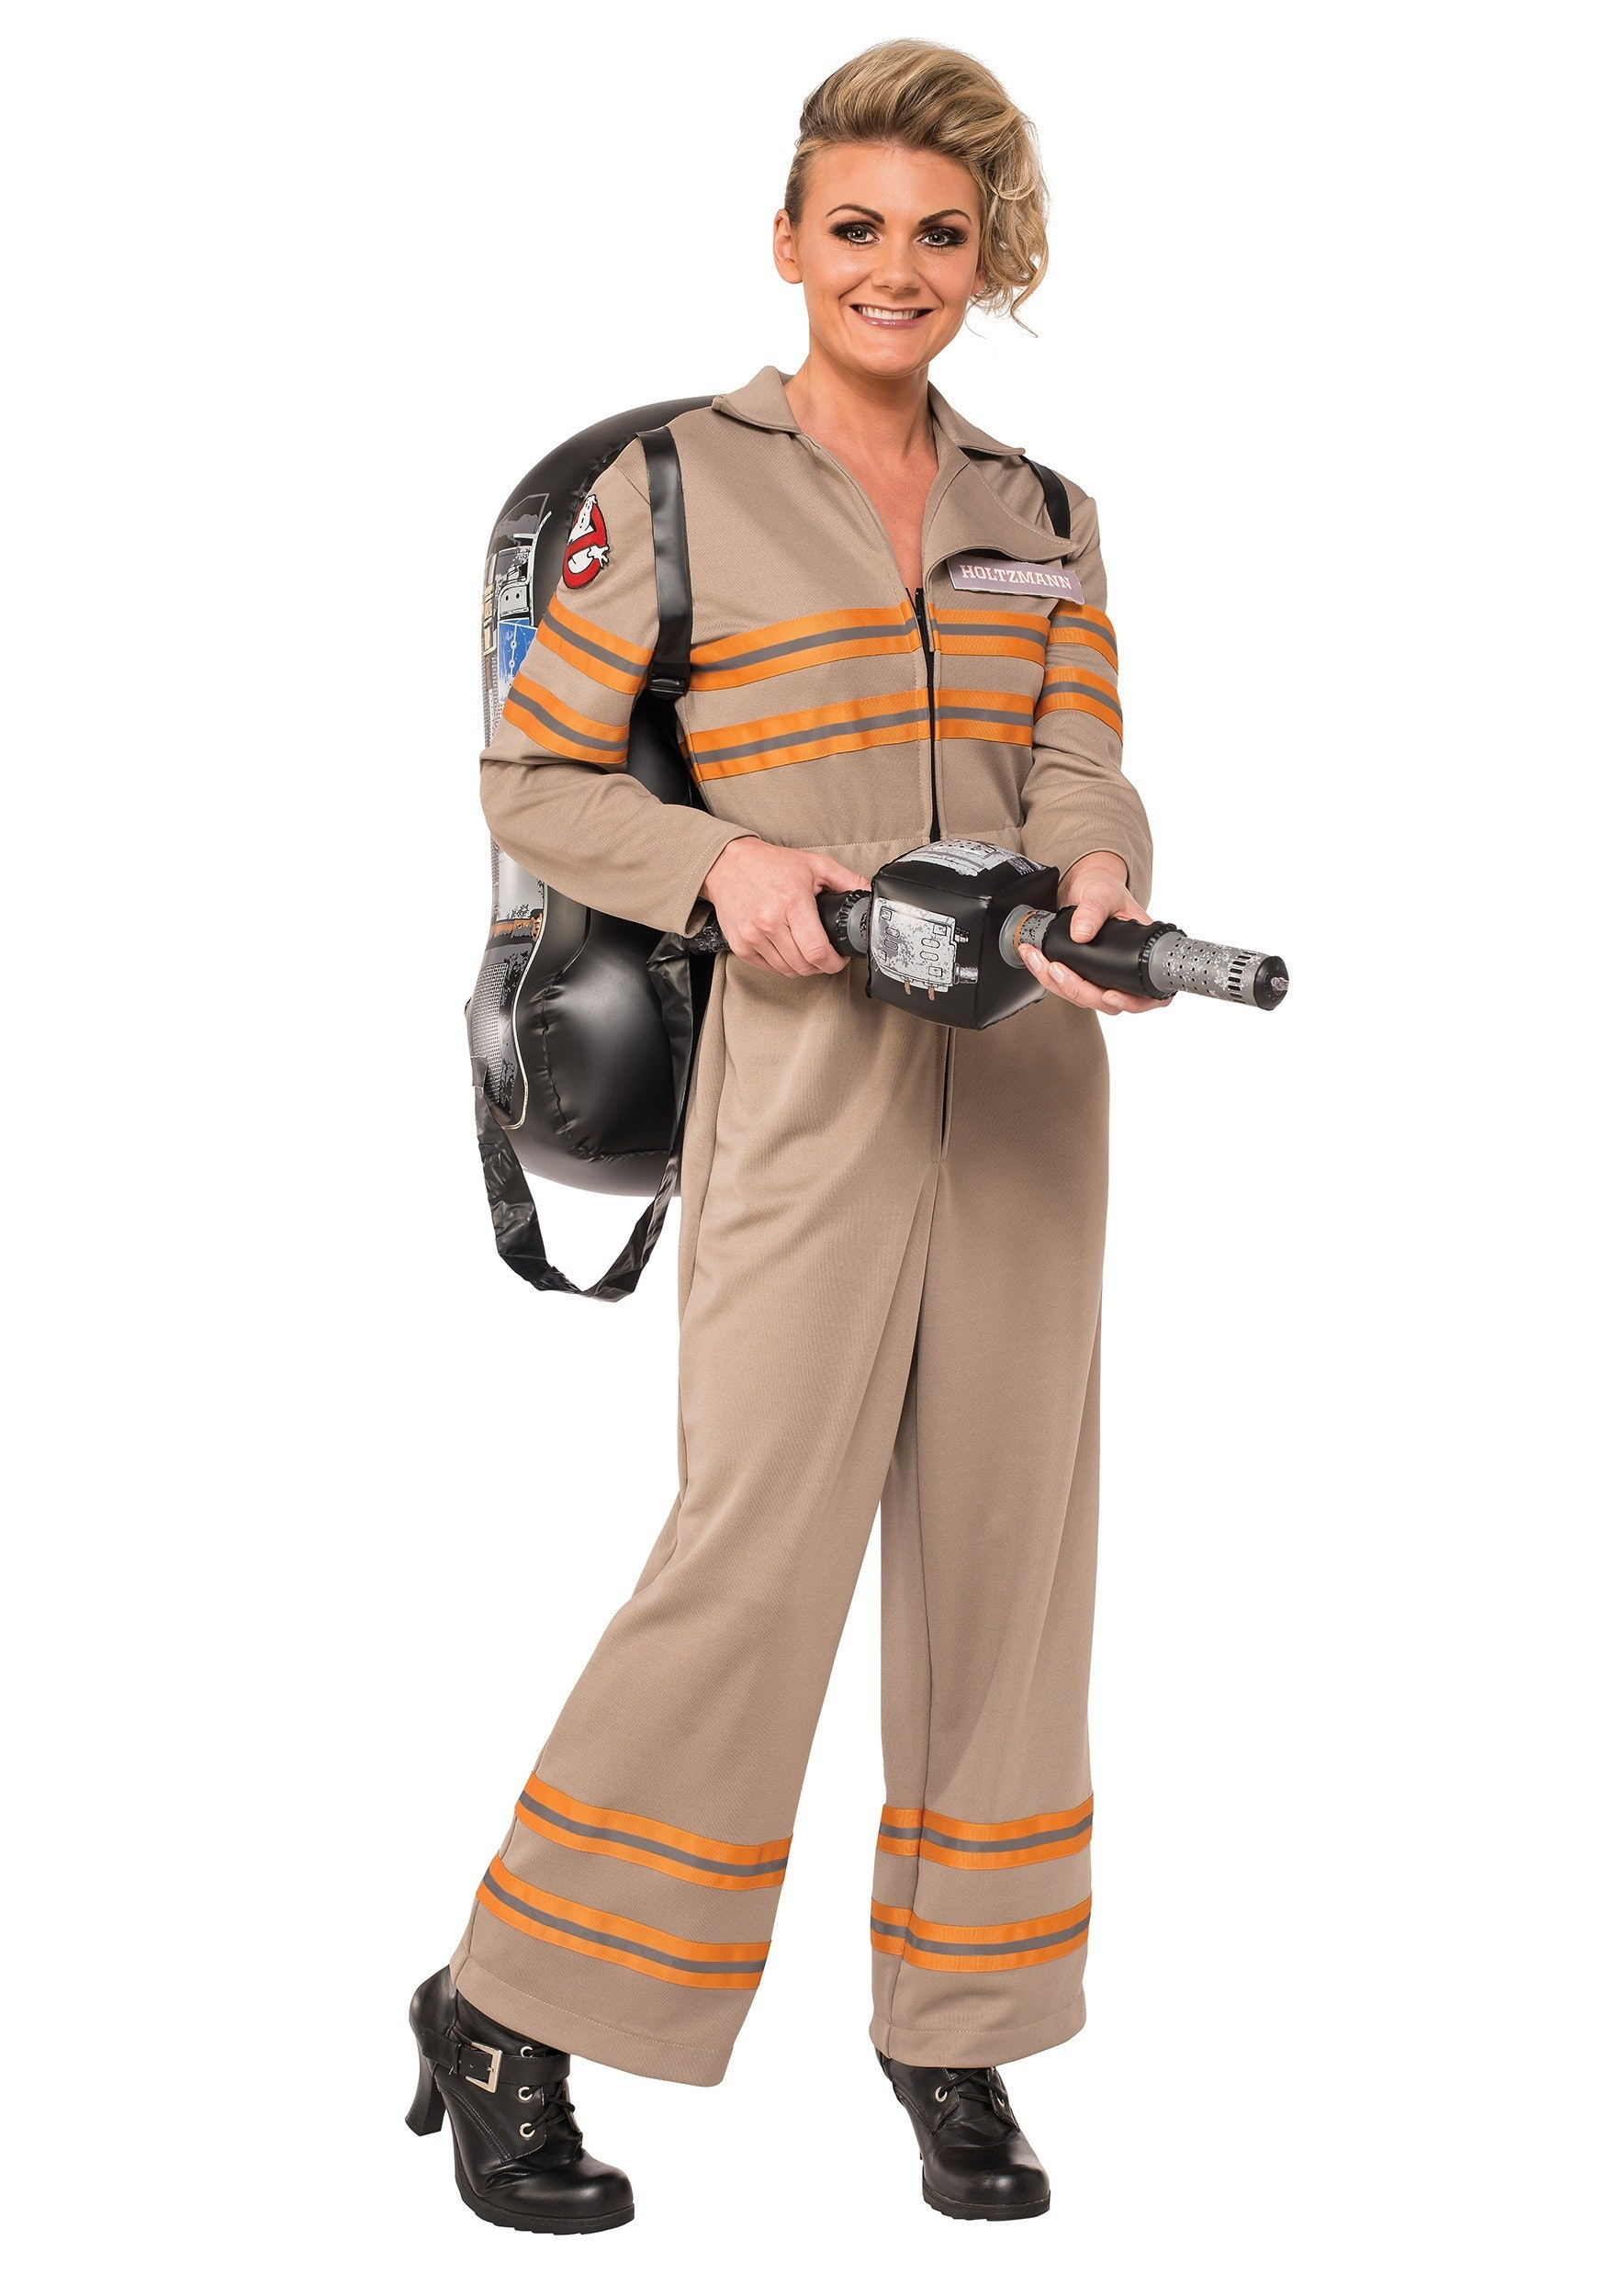 order your very own ghostbusters costume 4148 amazon and in one simple and comfortable suit you and the whole crew are as cool as the ladies of the